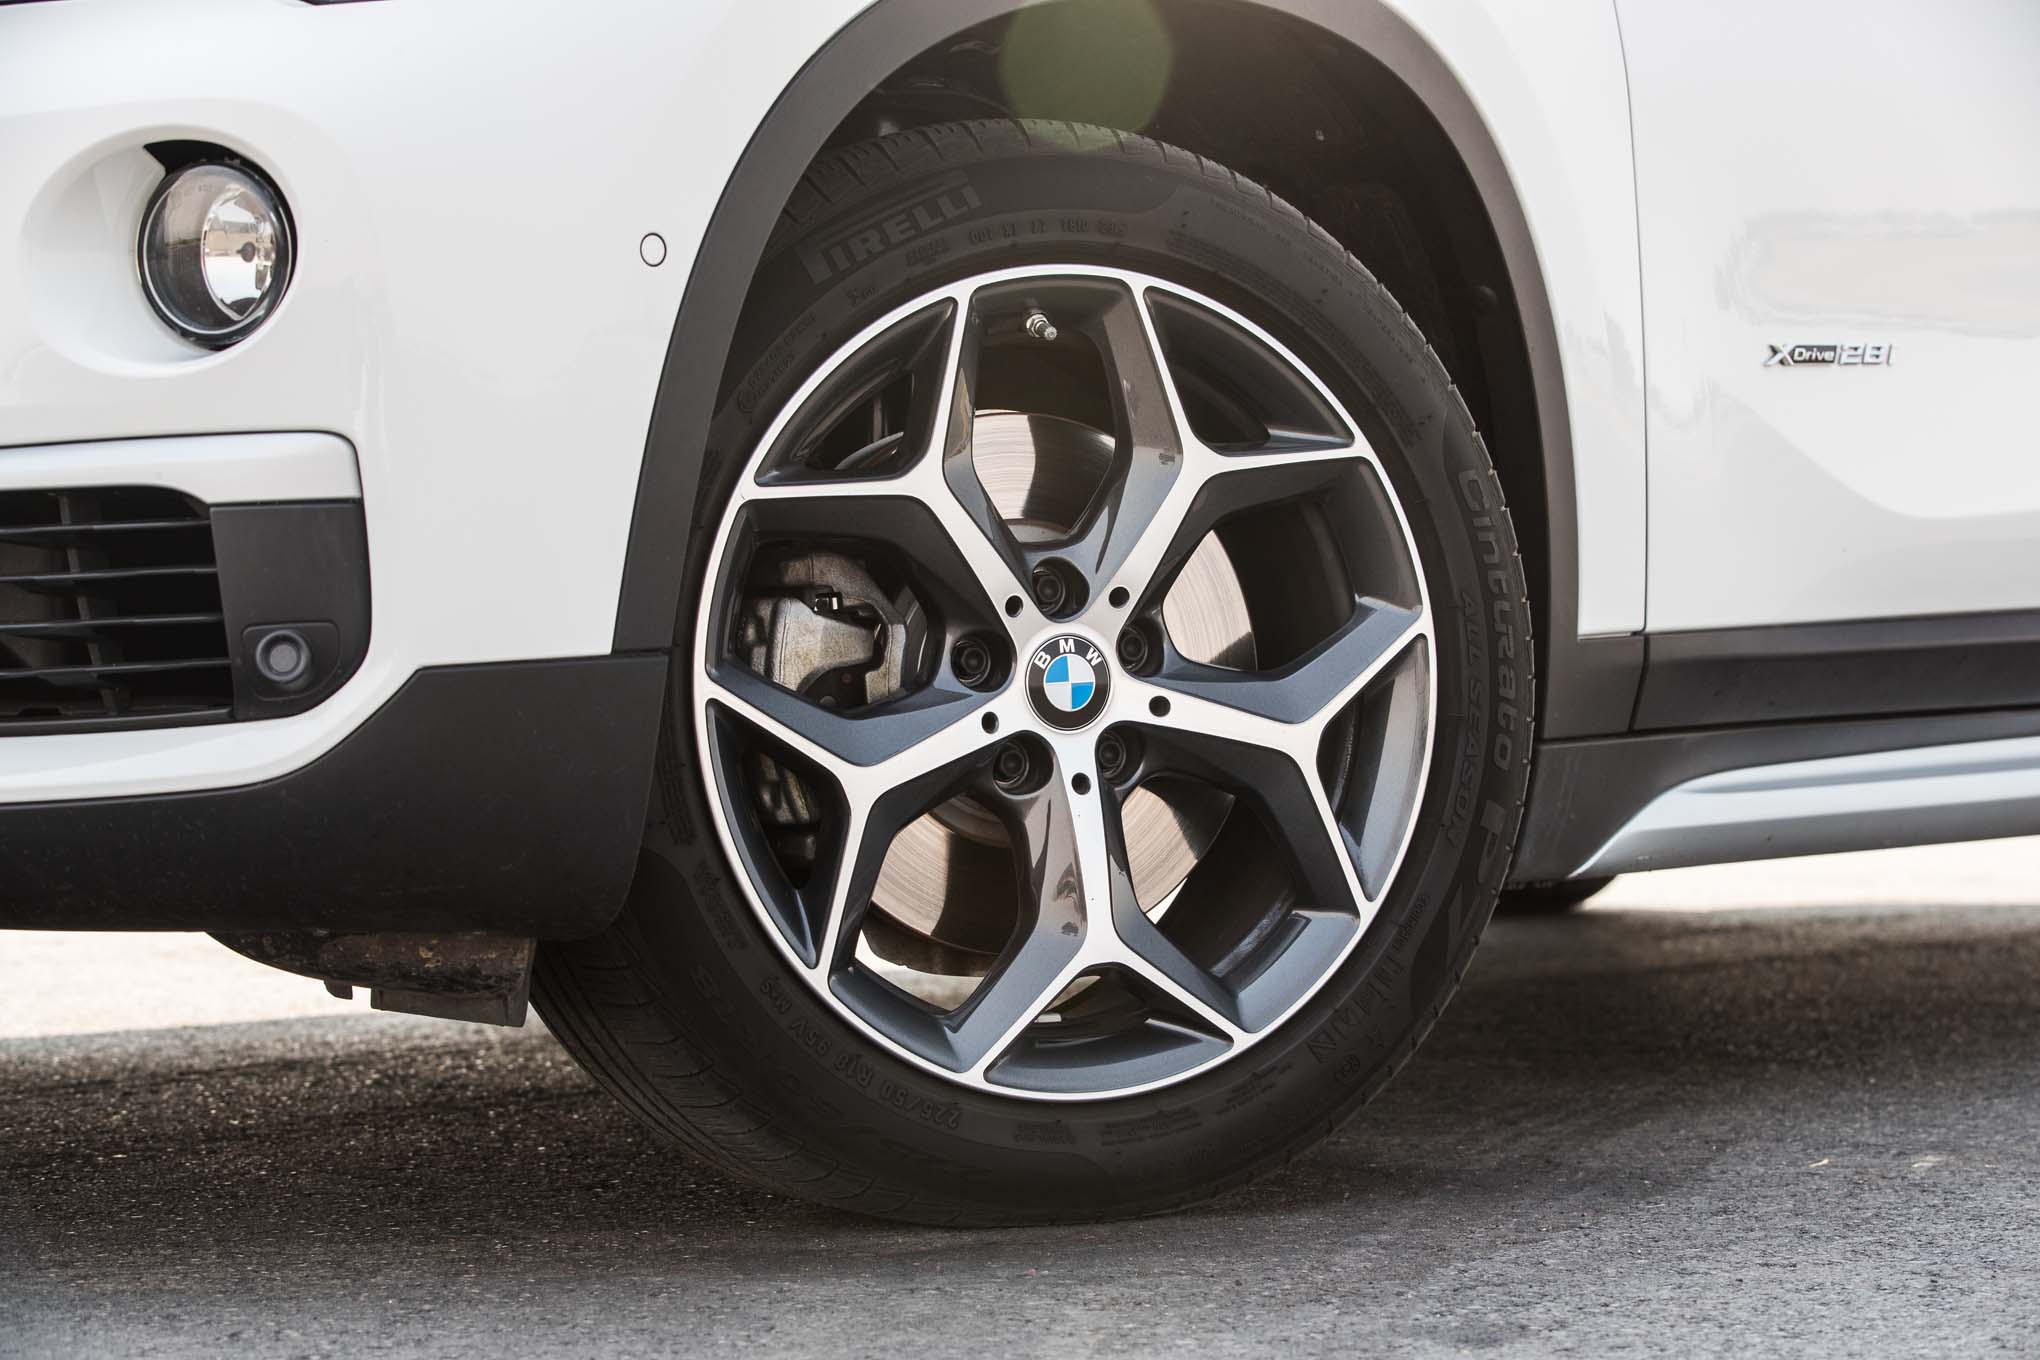 2017 BMW X1 XDrive28i Exterior View Wheel (View 10 of 23)